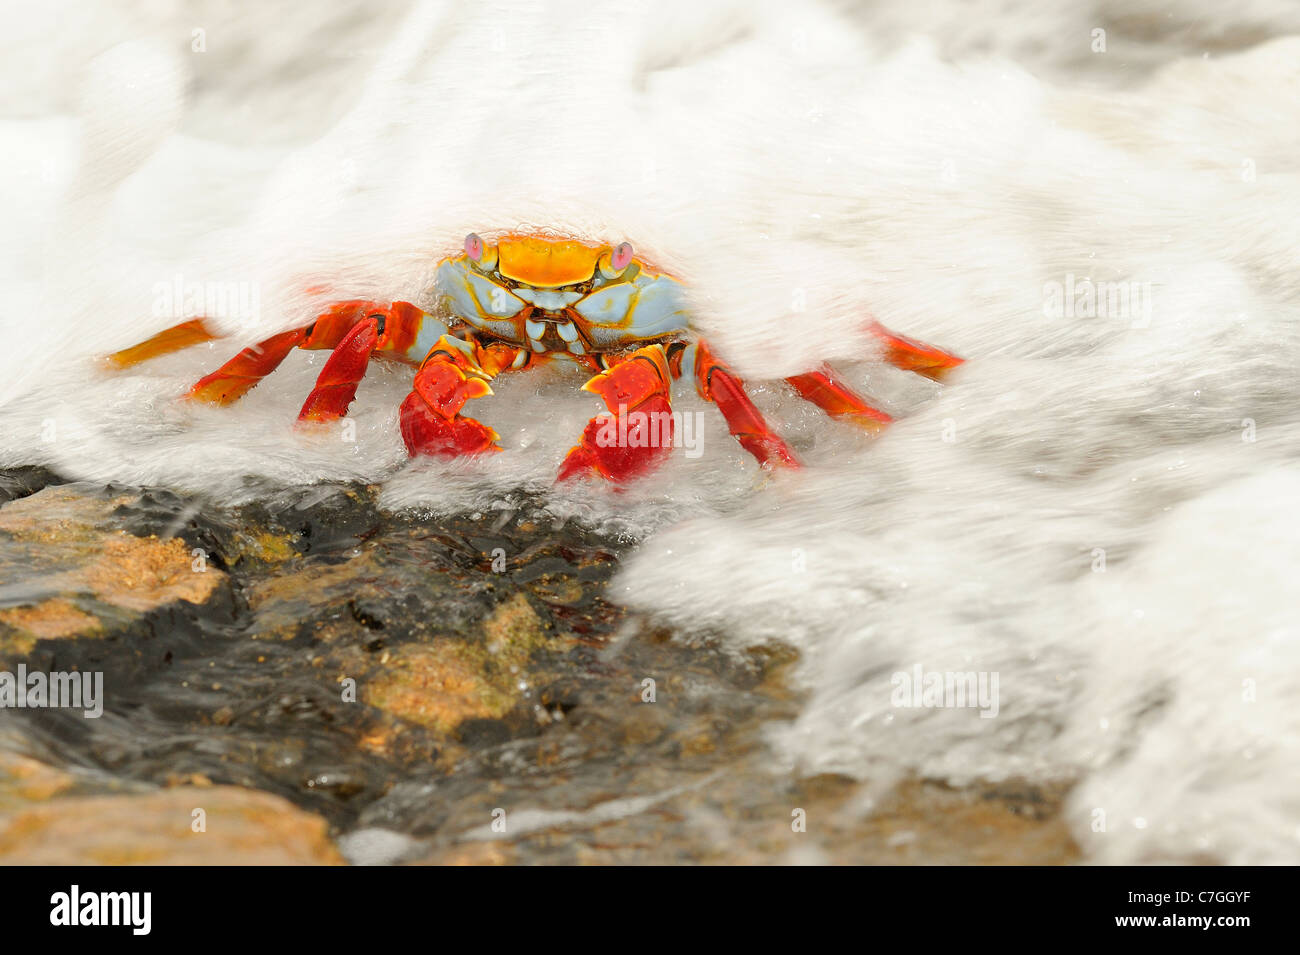 Sally Lightfoot Crab (Grapsus grapsus) with sea water flowing over it, Galapagos Islands, Ecuador - Stock Image